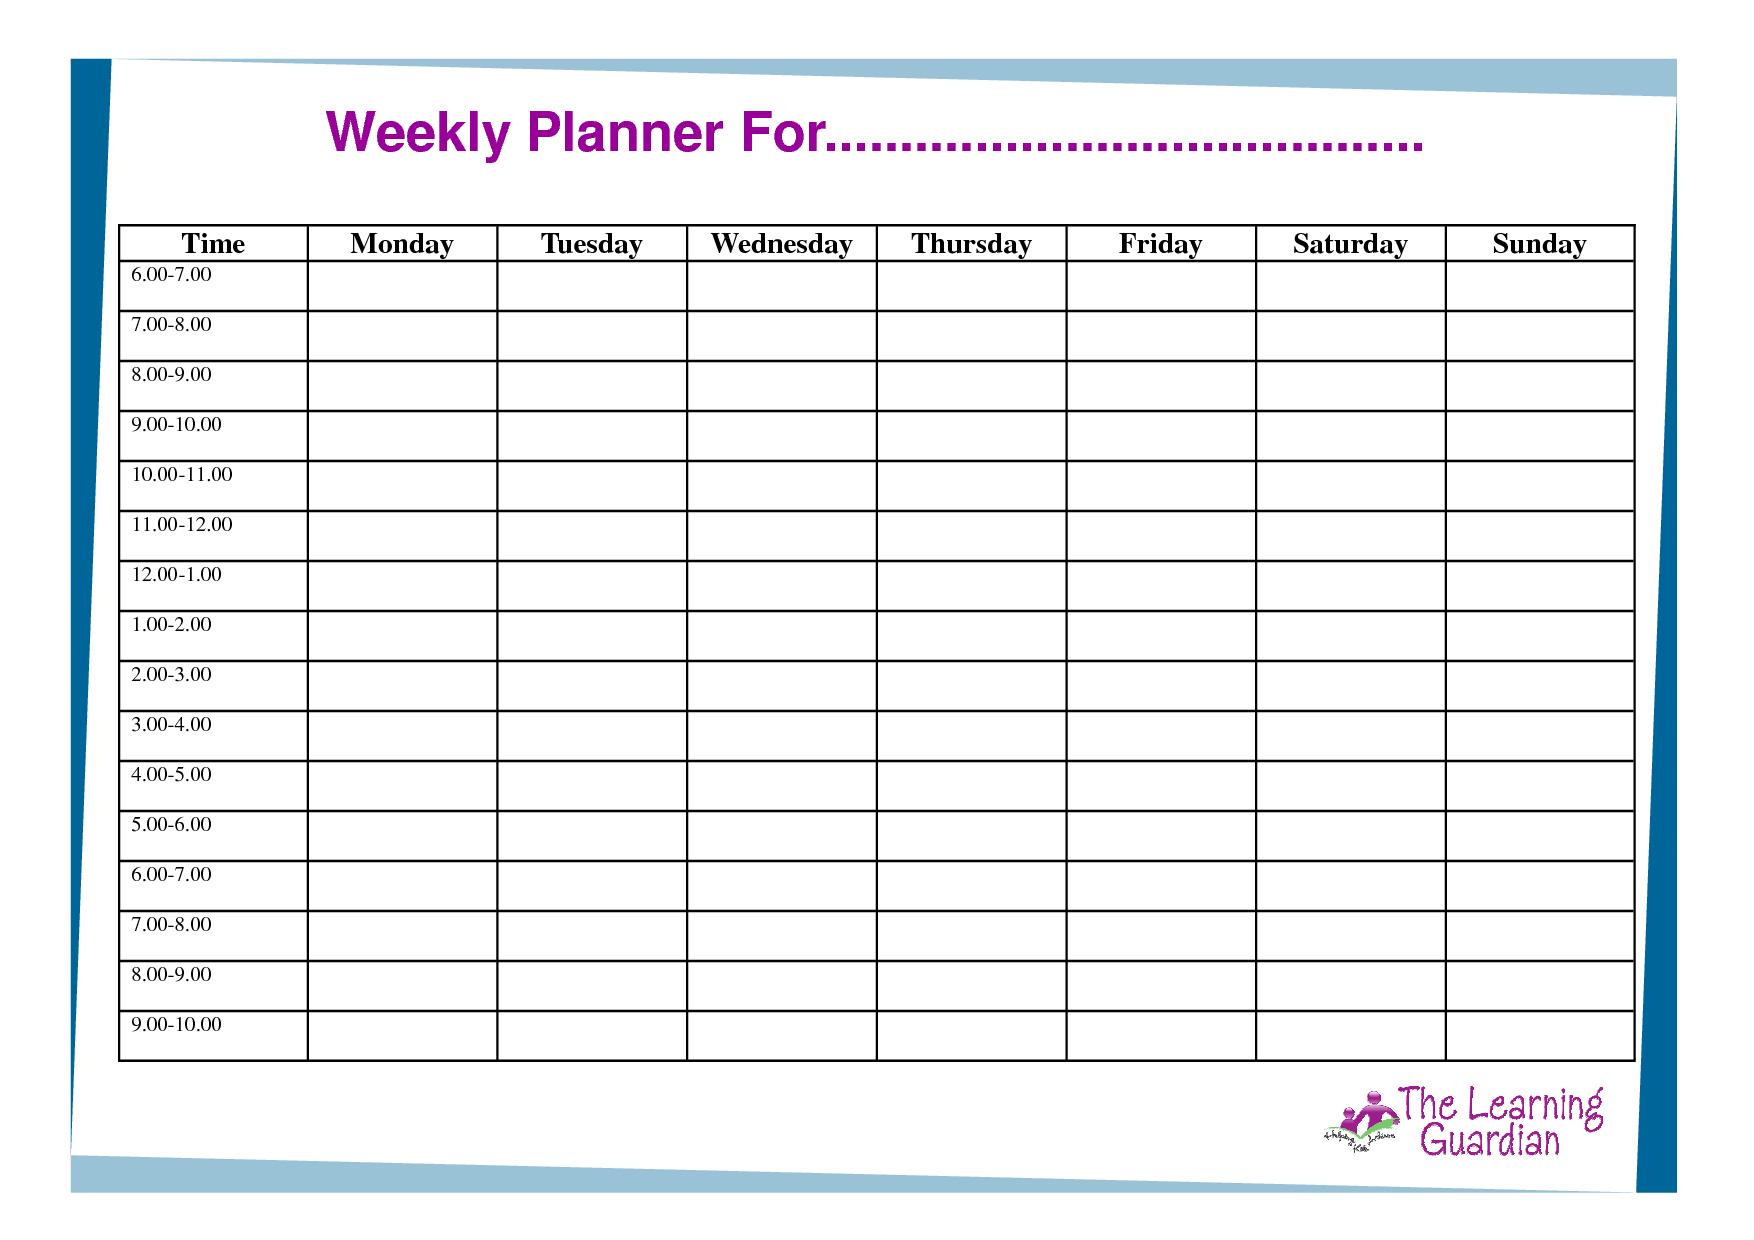 Free Printable Weekly Calendar Templates | Weekly Planner For Time with Weekly Schedule Template Free To Print